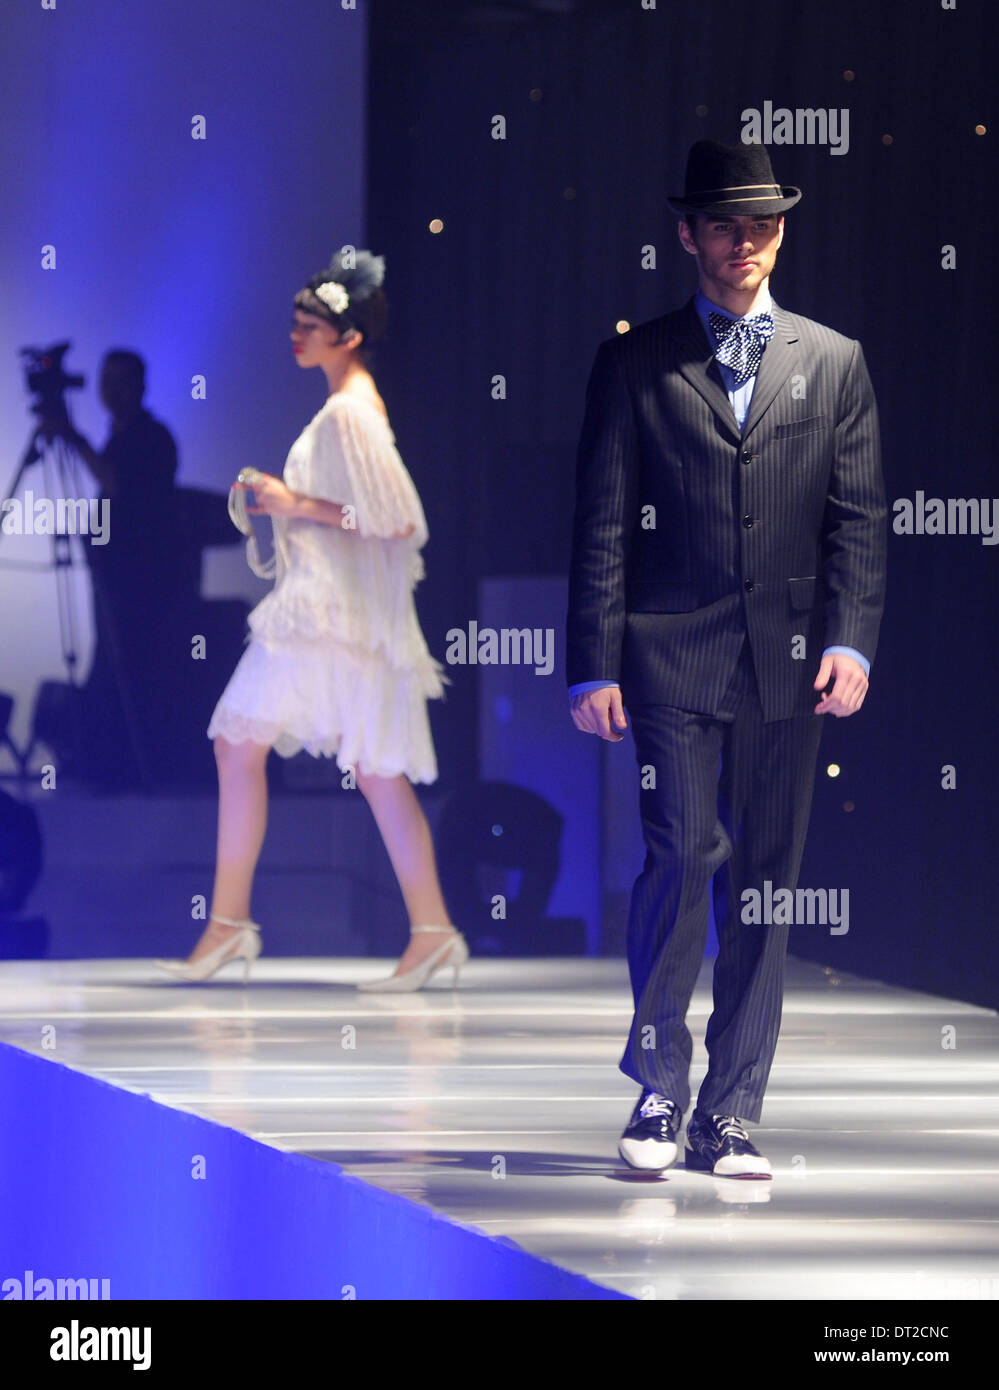 Jakarta, Indonesia . 06th Feb, 2014.  Models present creations by designer Adjie Notonegoro at 'The 1920's Public Enemies' fashion show in Jakarta, Indonesia, Feb, 6. 2014. Credit:  Xinhua/Alamy Live News - Stock Image